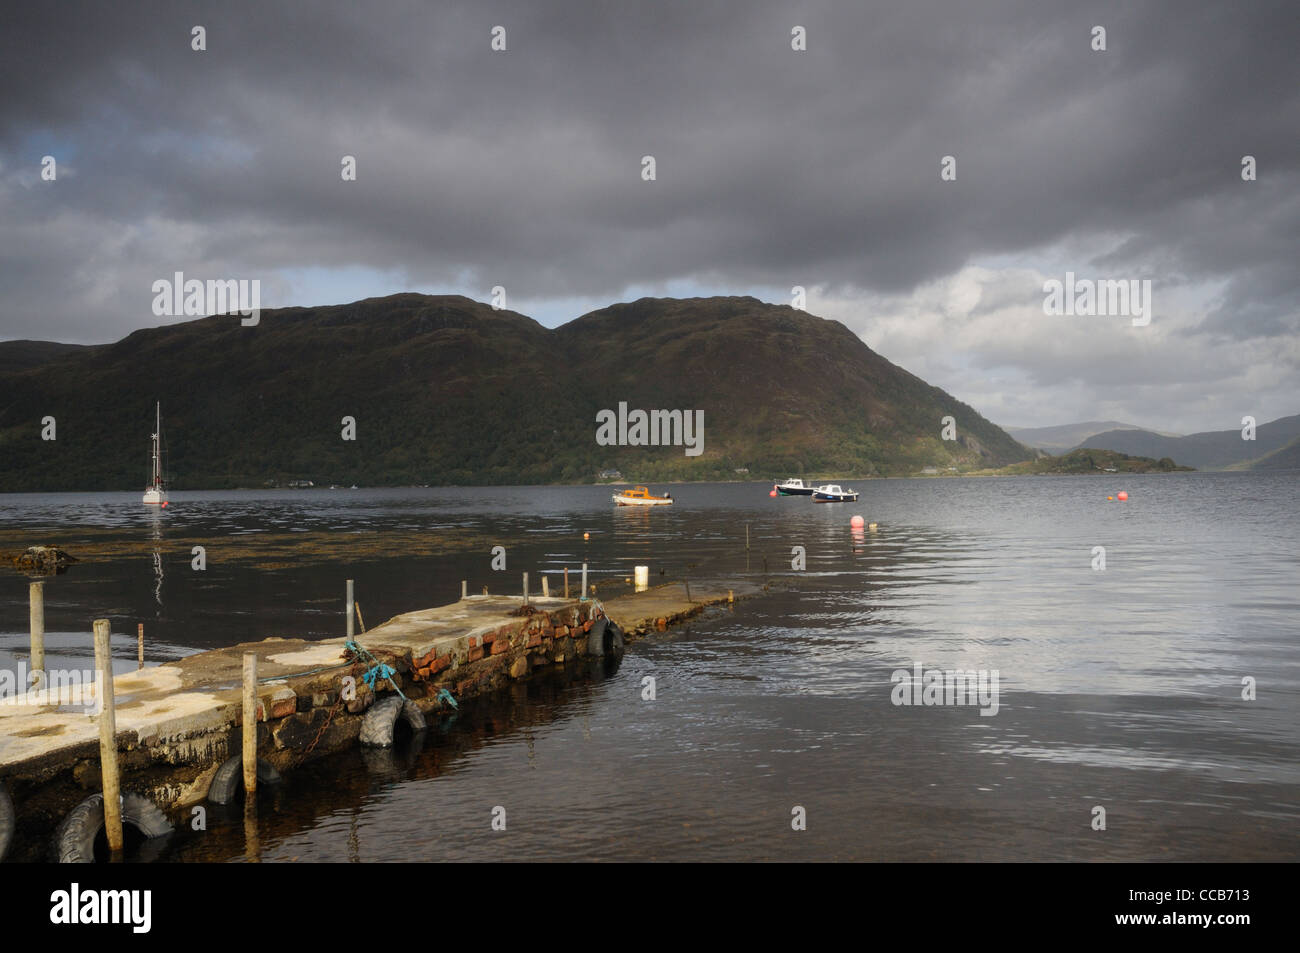 View at Airds Bay looking across Loch Etive to the mountain Na Maoilean, Argyll and Bute, Scotland Stock Photo